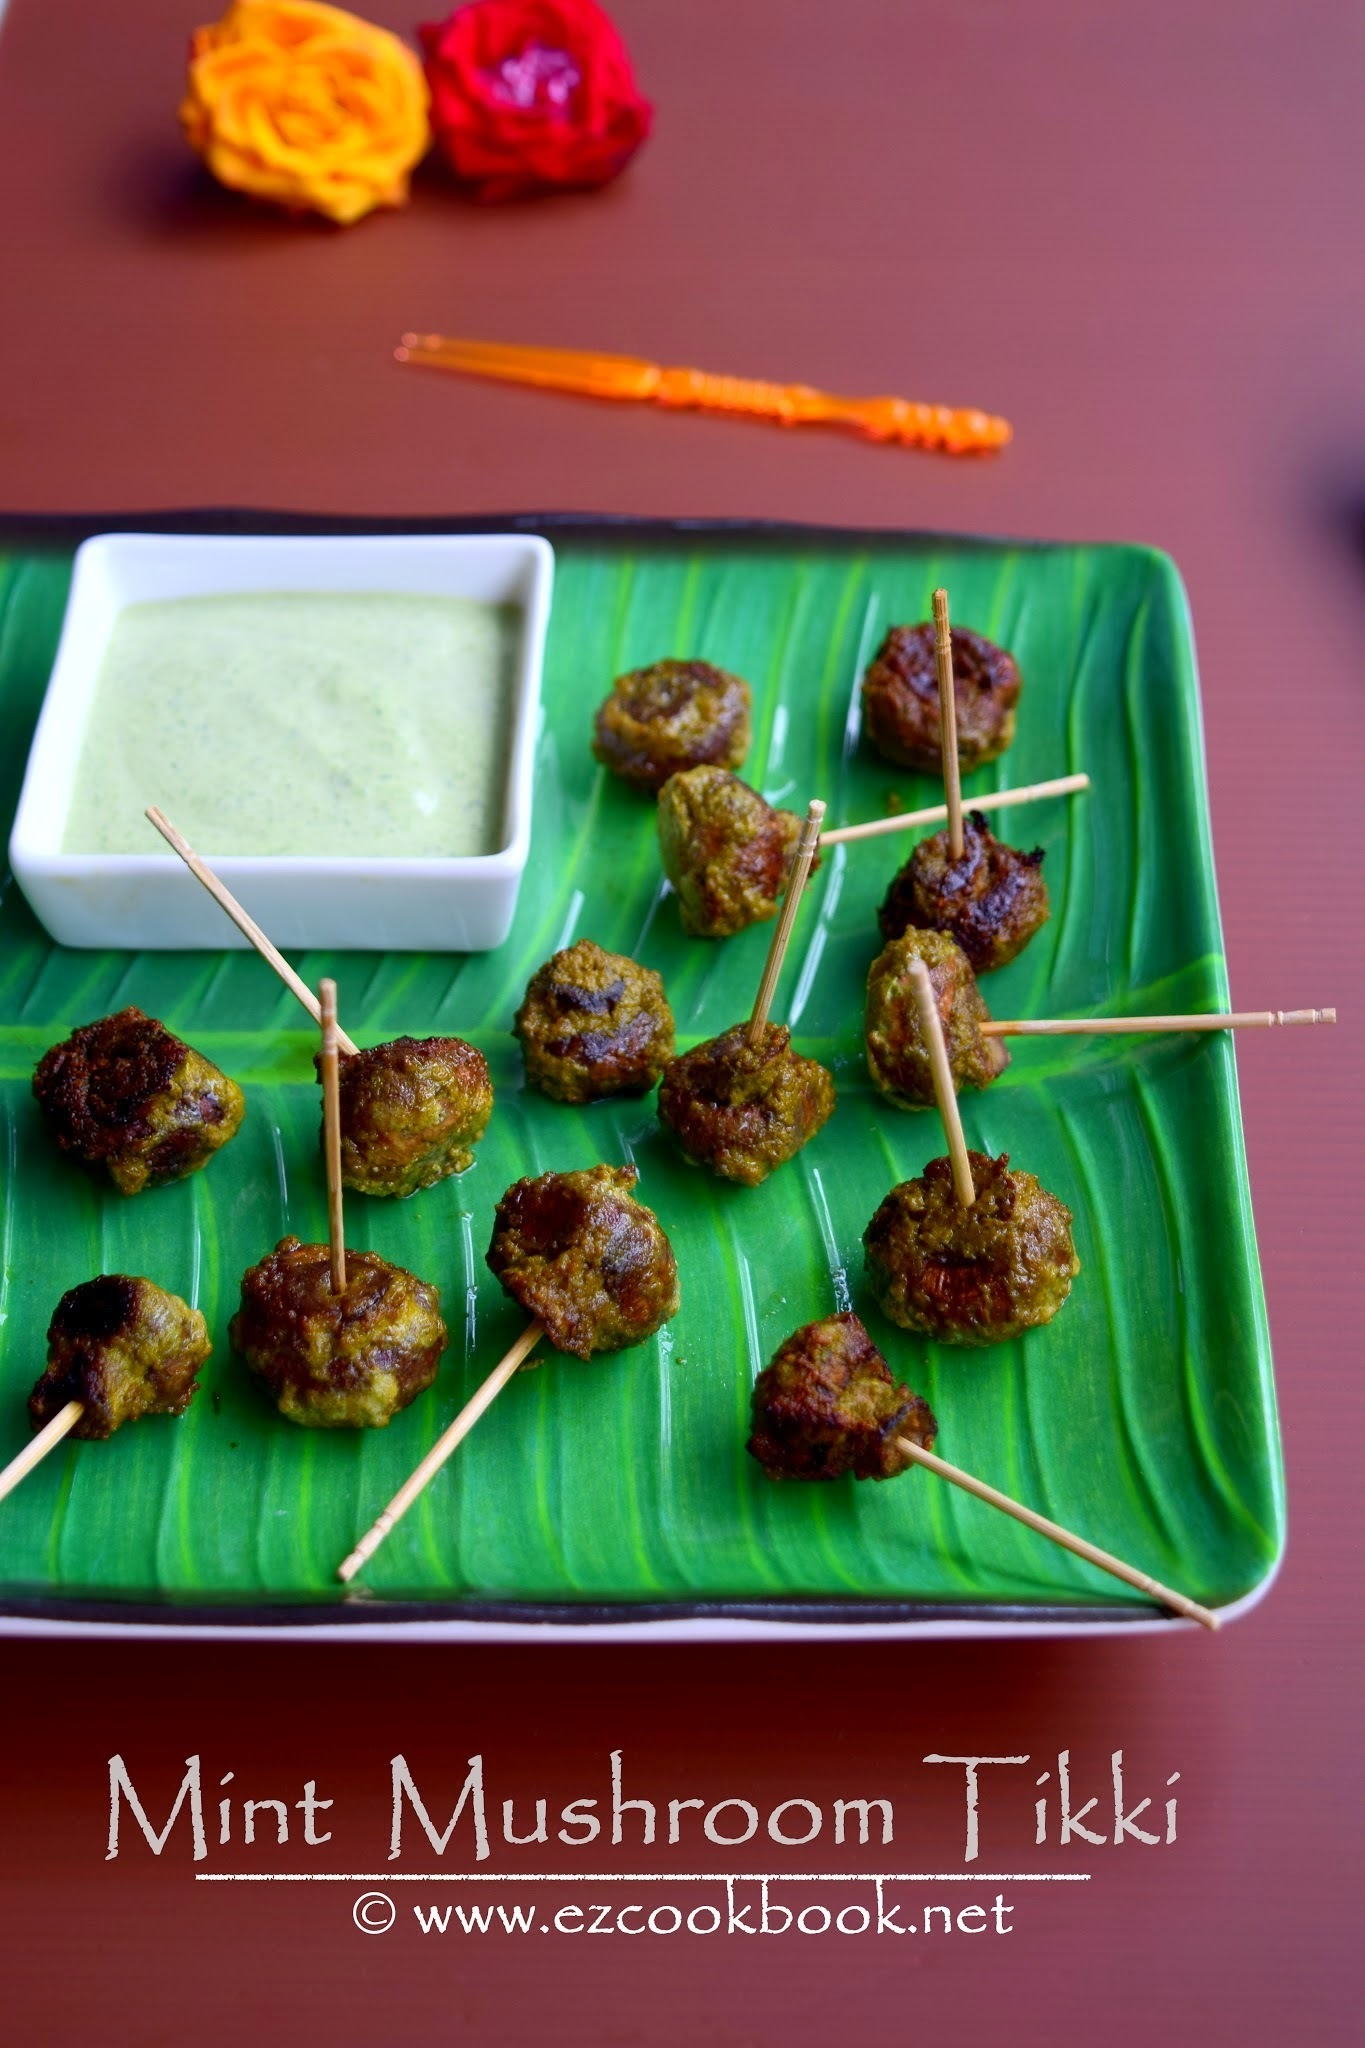 Mint Mushroom Tikki | Healthy Low-Calorie Snack Recipe